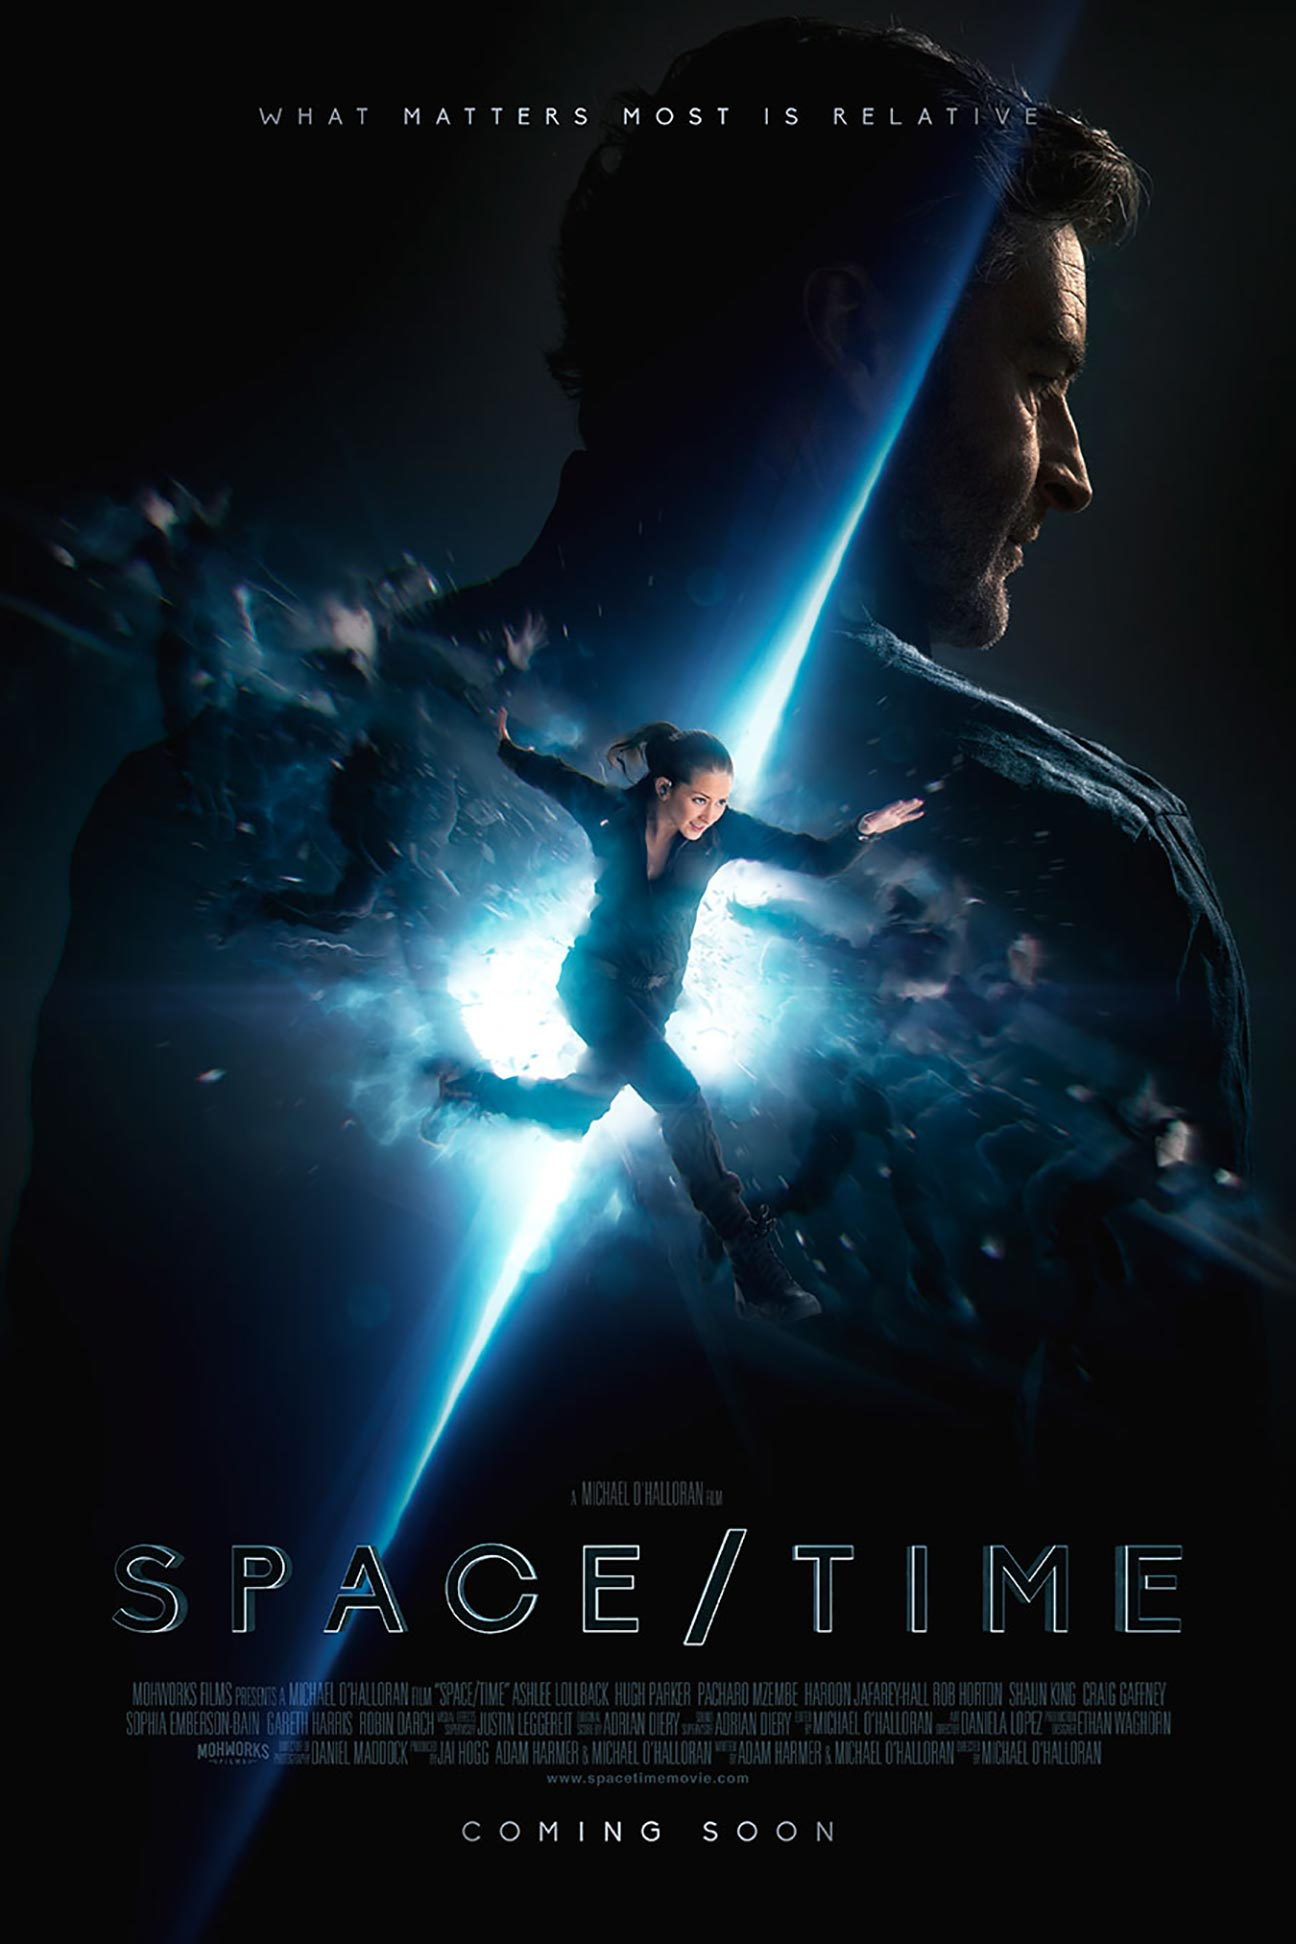 Space/Time Poster #1